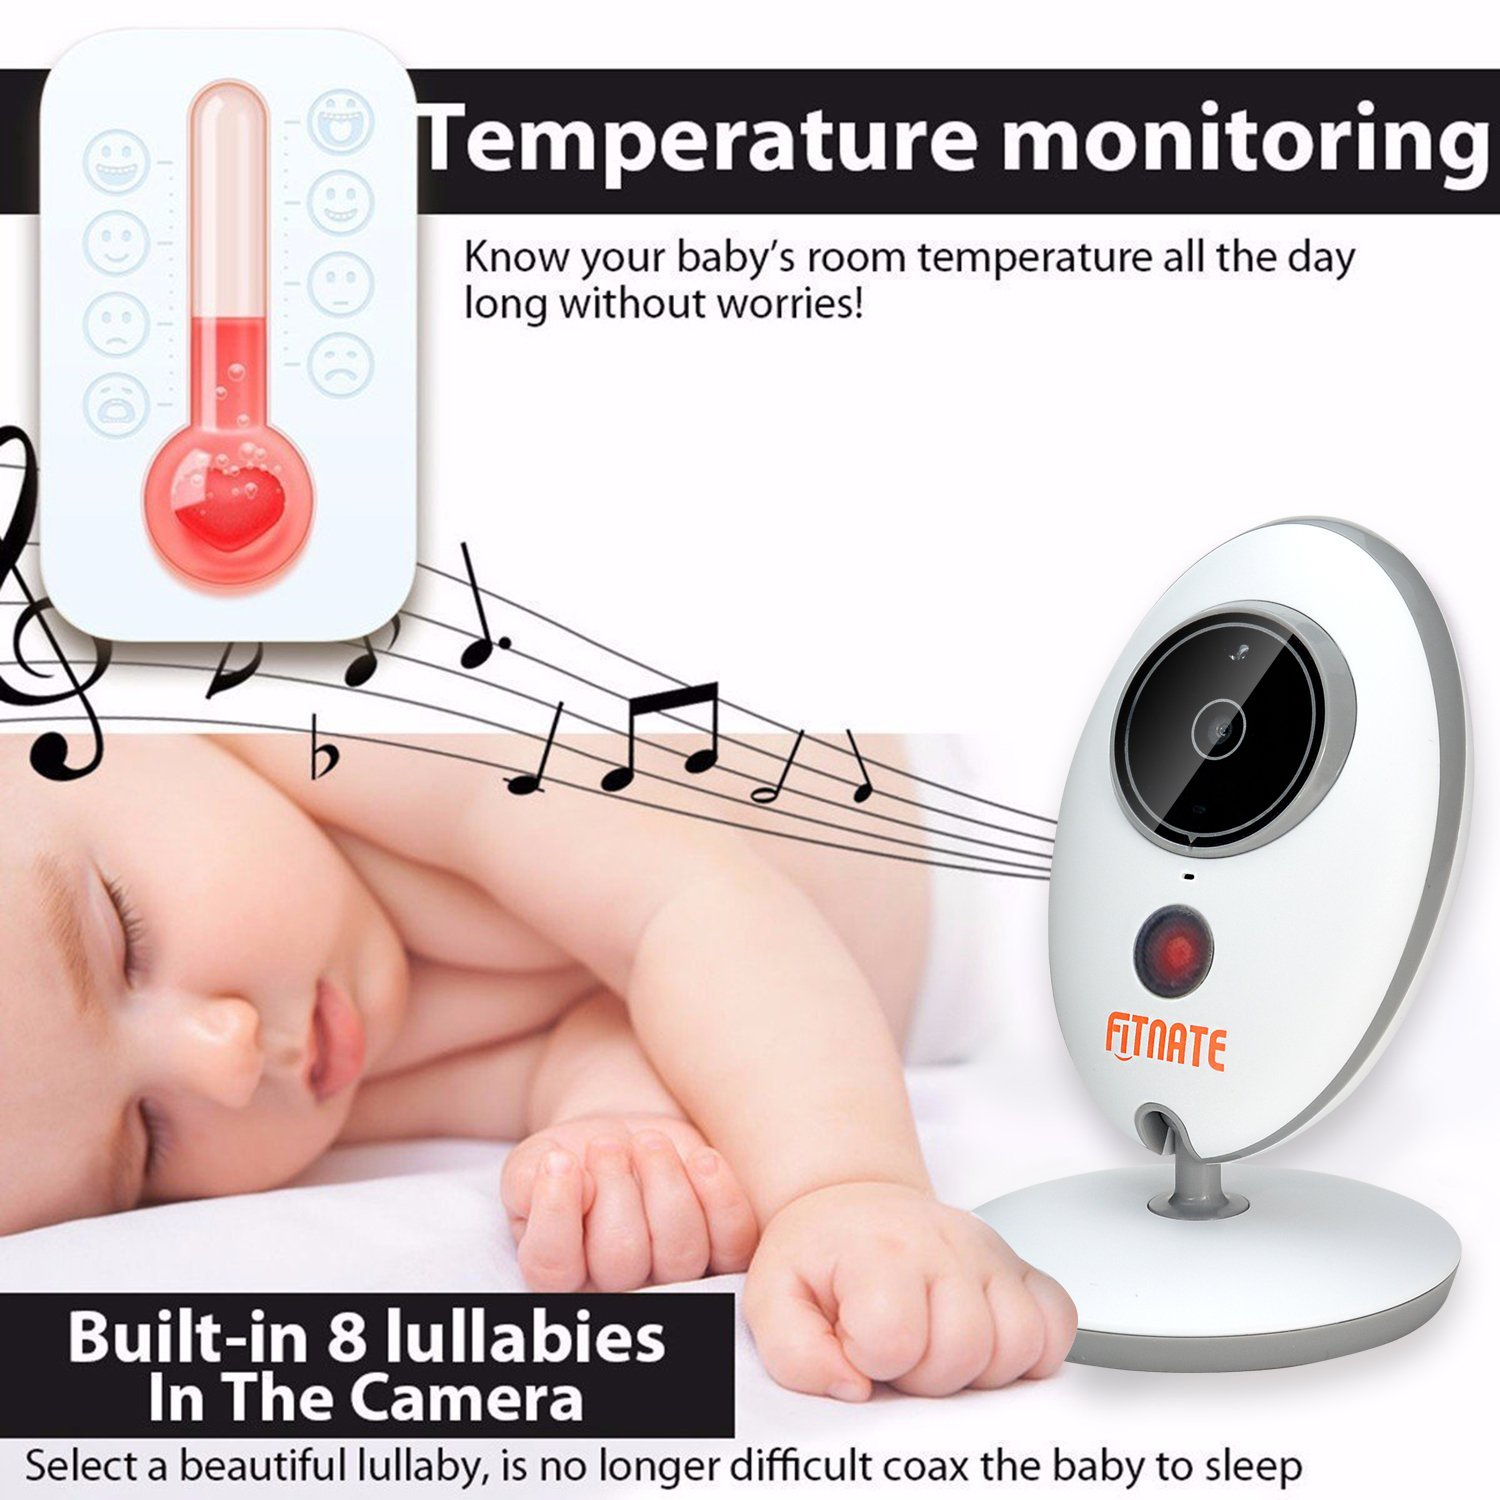 Video Baby Monitor, Fitnate Wireless Baby Monitor with Digital Camera, Night Vision Temperature Monitoring & 2 Way Talkback System, Built-in Remote Lullabies - 2.31.5 inch Monitor Version